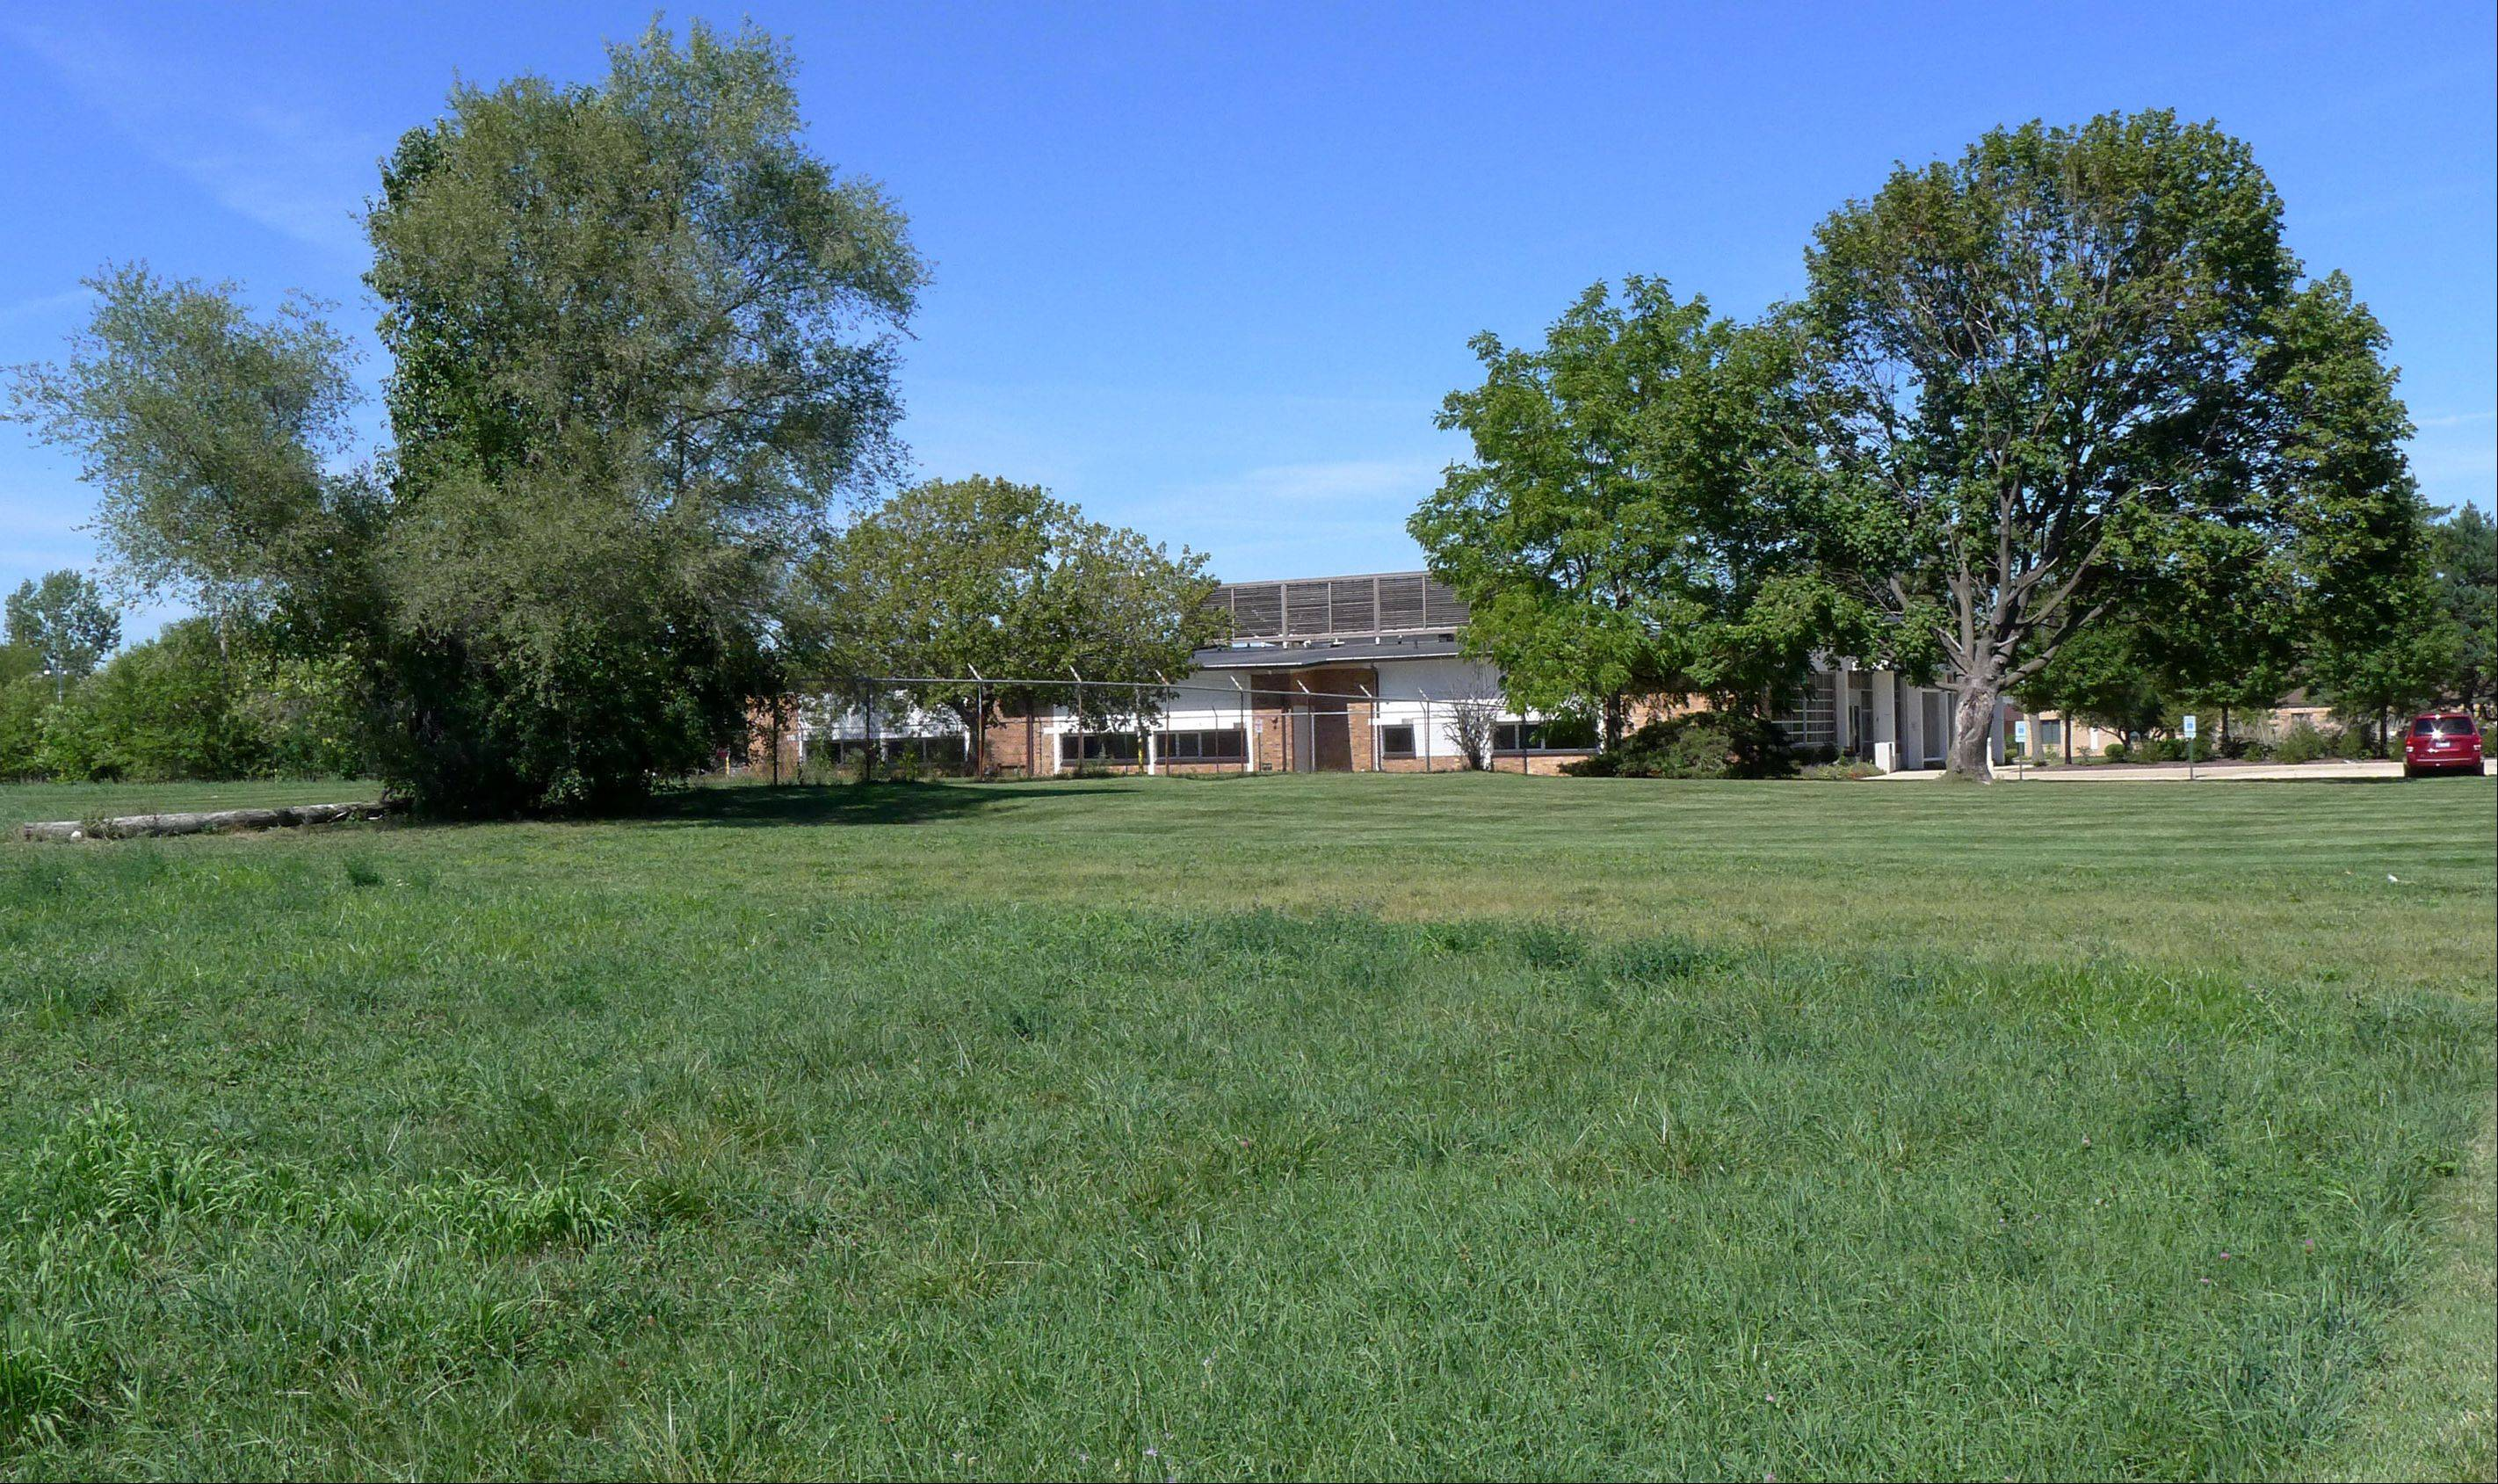 The Carol Stream Library Board is deciding whether to sell vacant property on the west side of Kuhn Rd. just south of the College Of DuPage building.